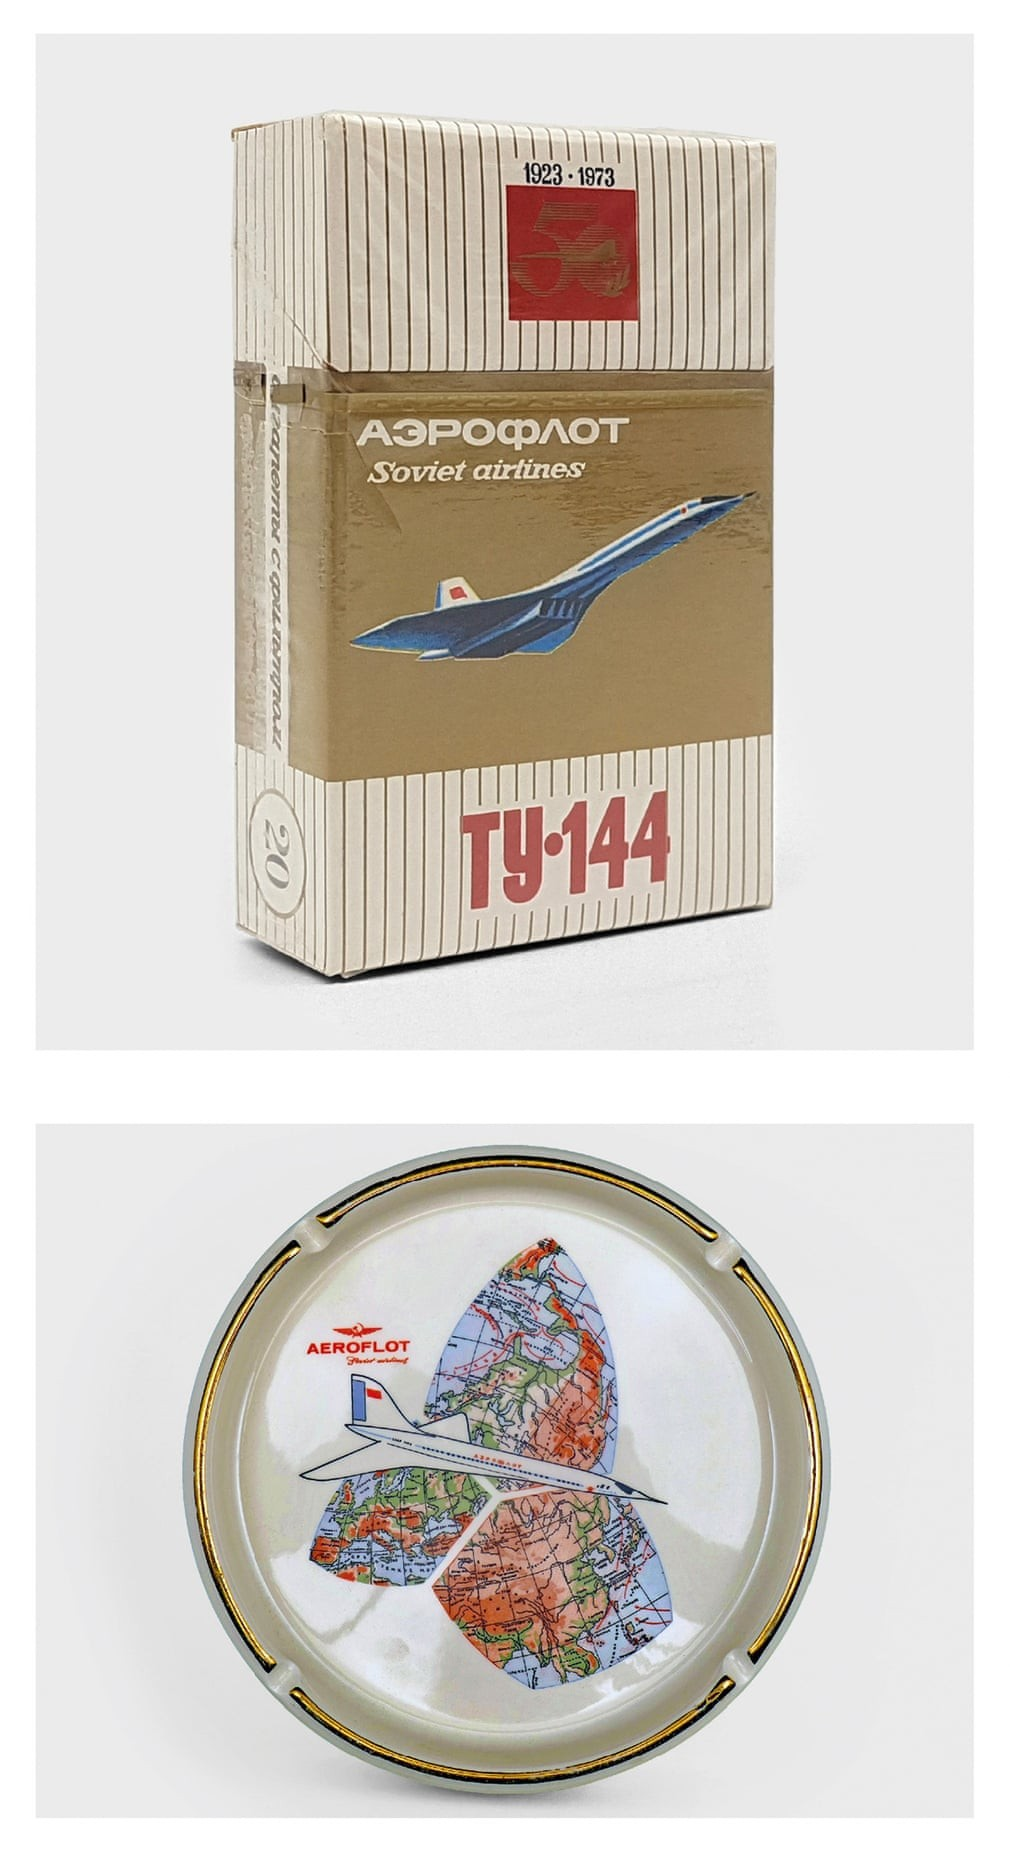 The airline produced a variety of souvenir items, including a cigarette pack produced in 1973 to commemorate Aeroflot's 50th anniversary and an ashtray from the 70s. Photo: The Guardian